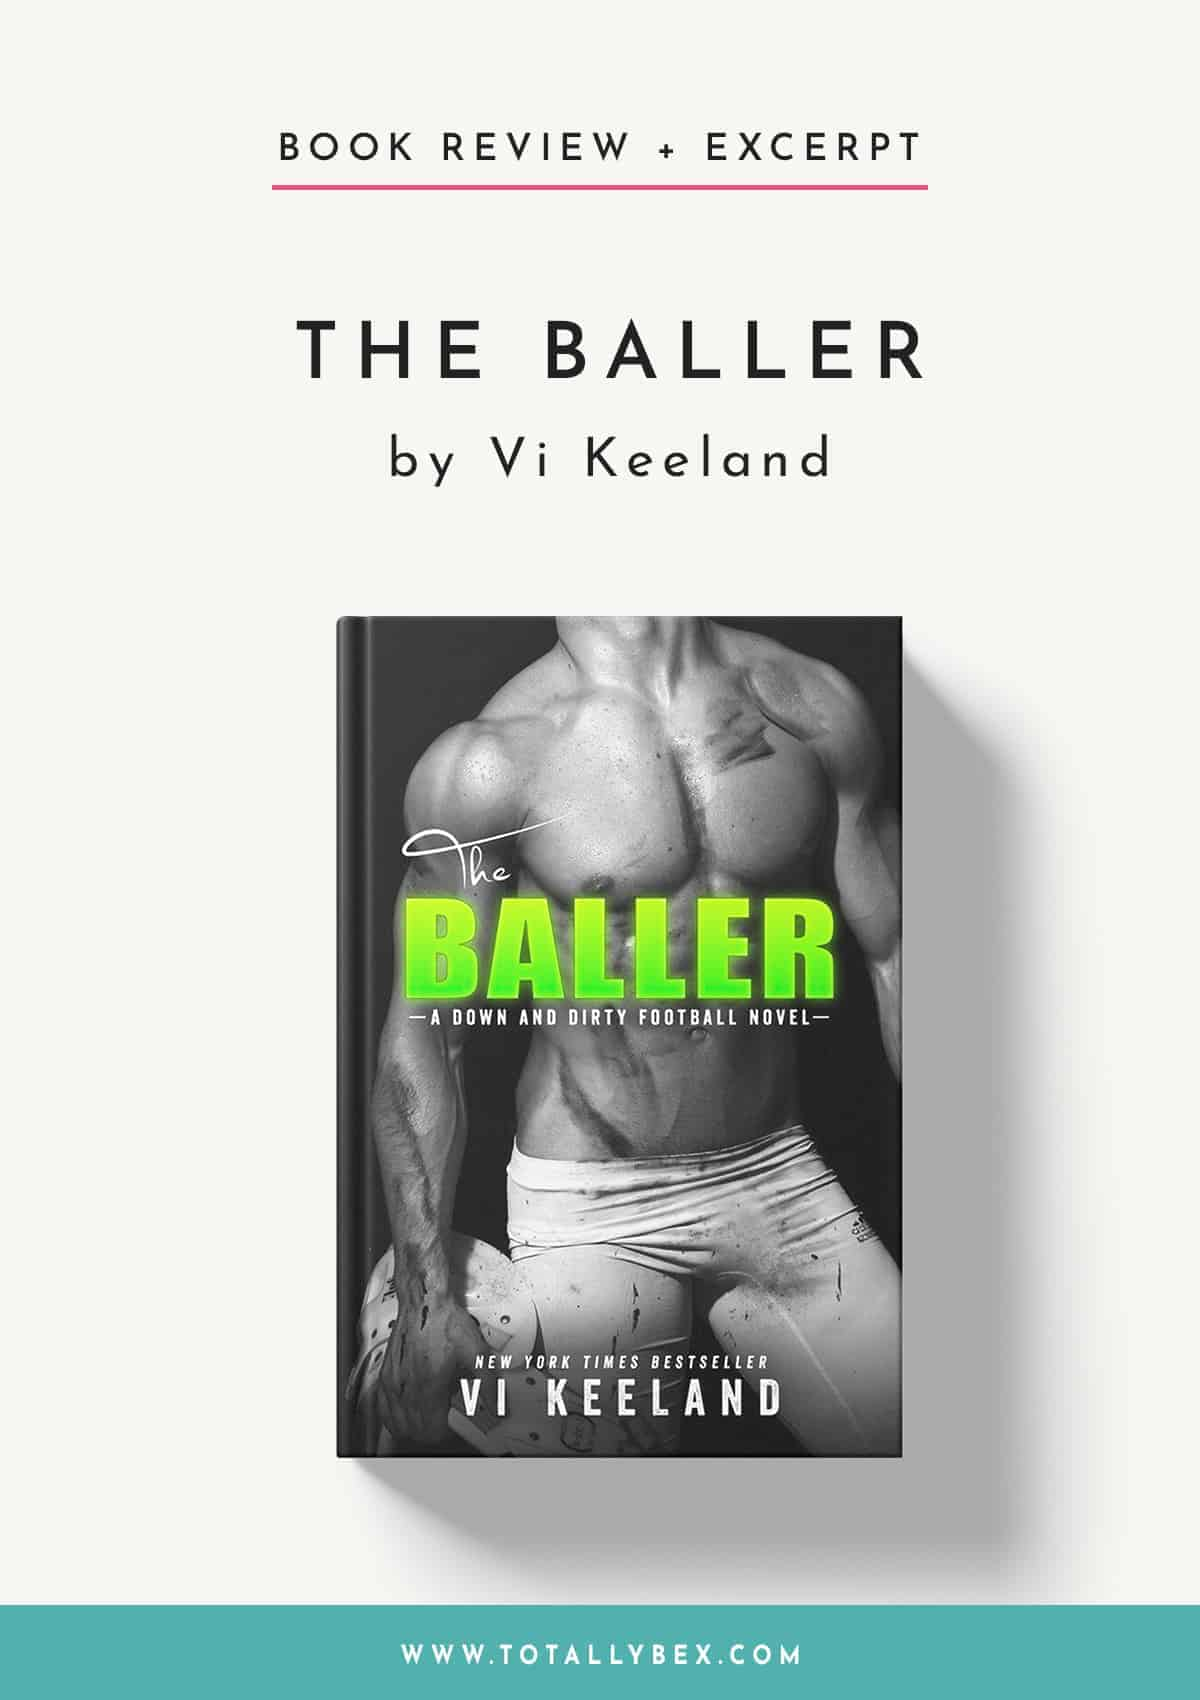 The Baller by Vi Keeland-Book Review+Excerpt